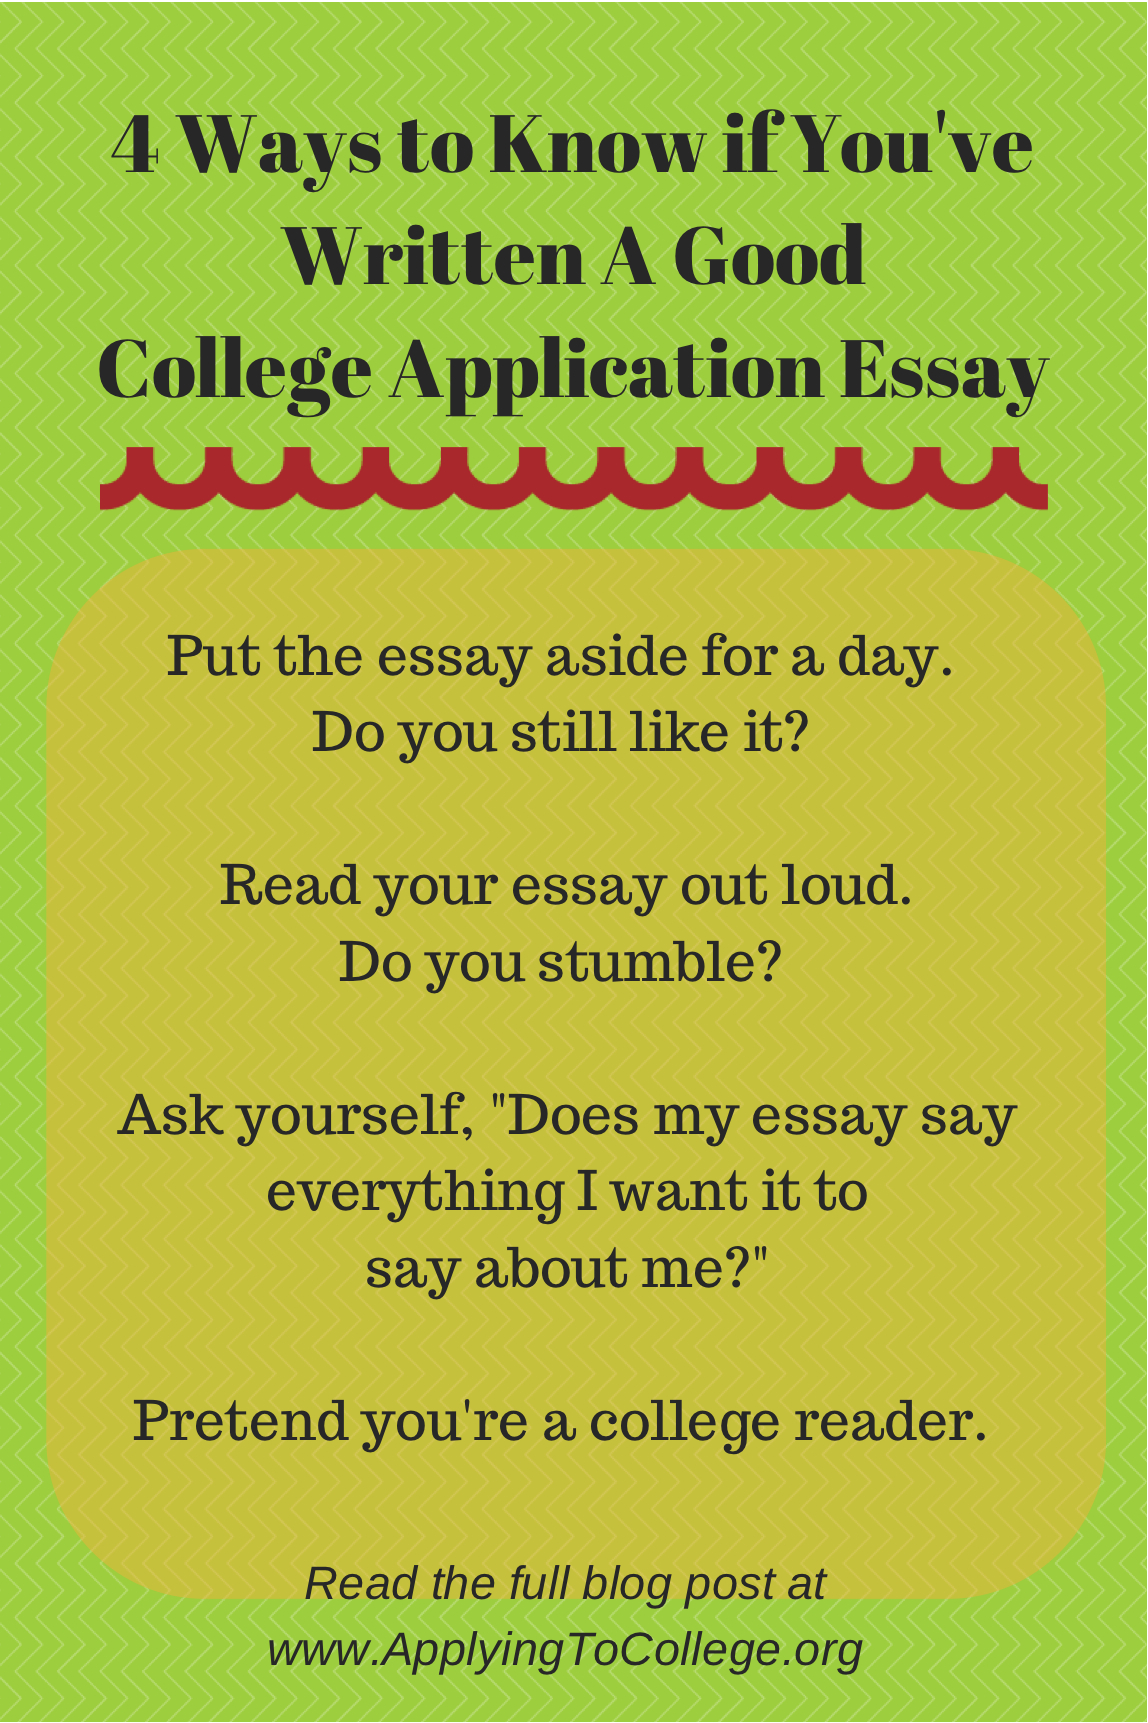 015 Essay Example Read My To Me 4ways Know If Youve Written Unique And Tell It's Good Full